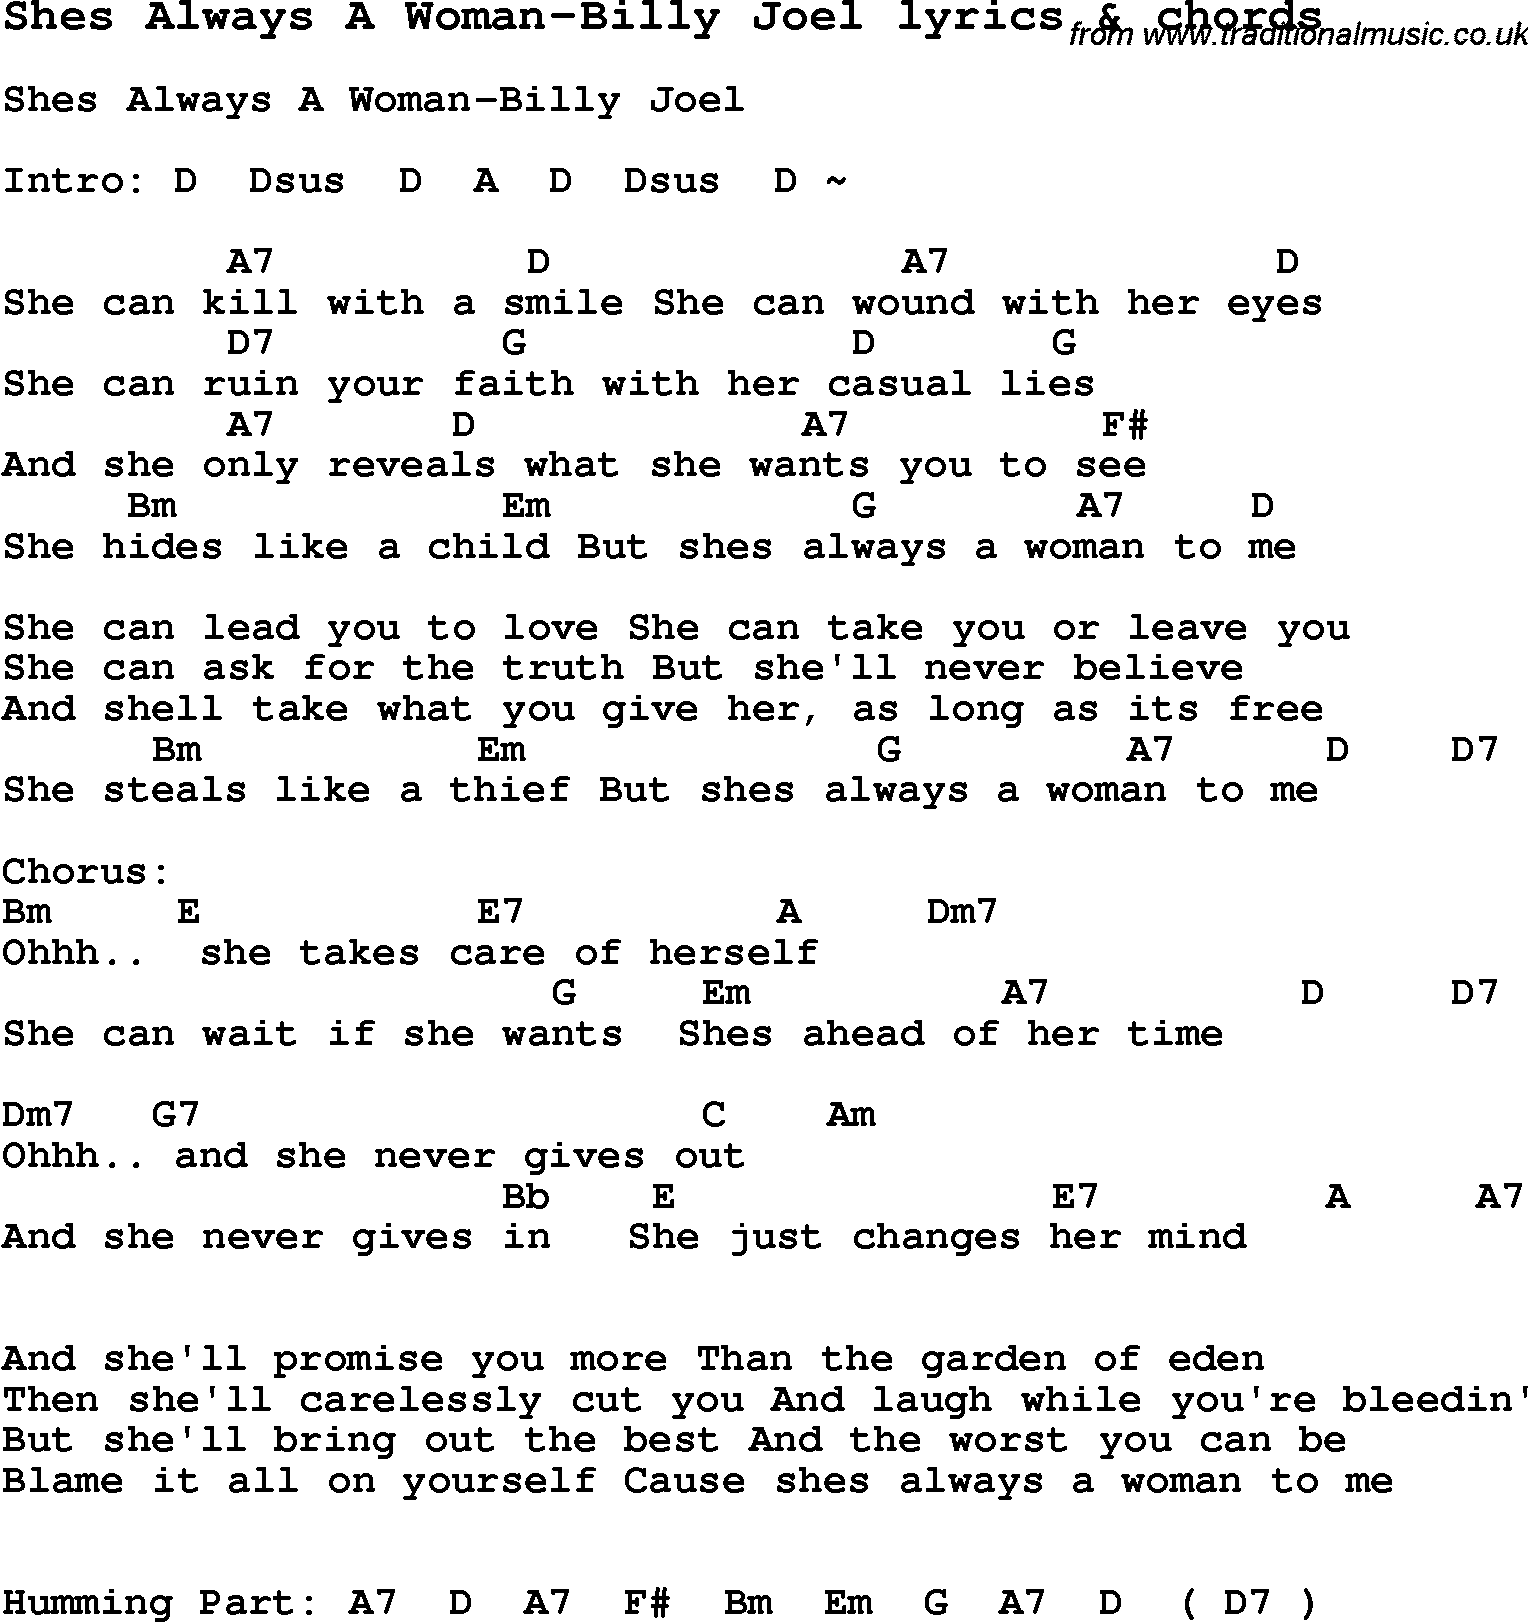 Love Song Lyrics For Shes Always A Woman Billy Joel With Chords For